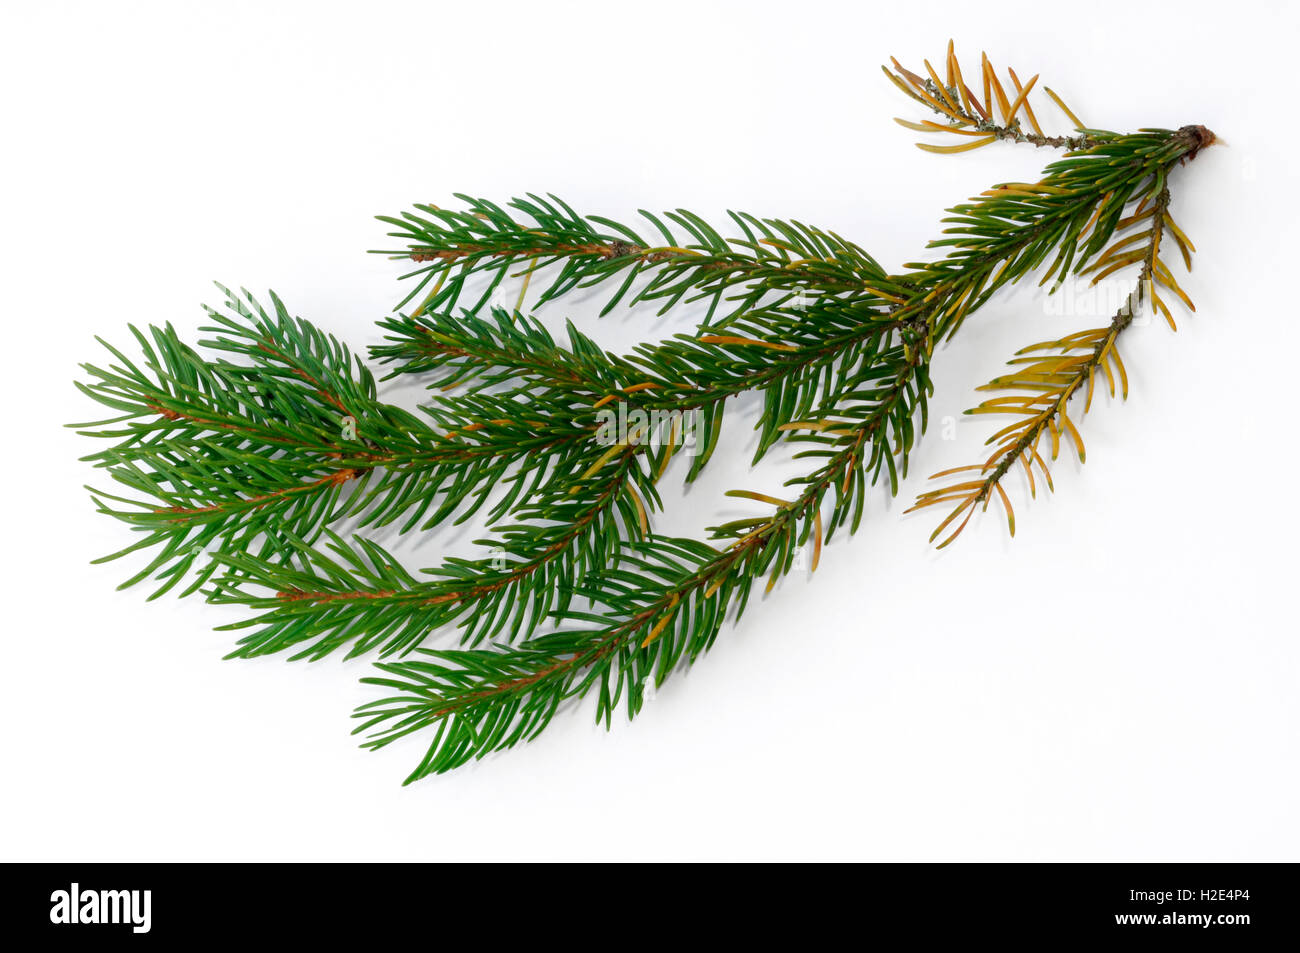 Norway Spruce, Common Spruce (Picea abies), damaged twig with fallen off needles and discoloration of needles. Studio - Stock Image